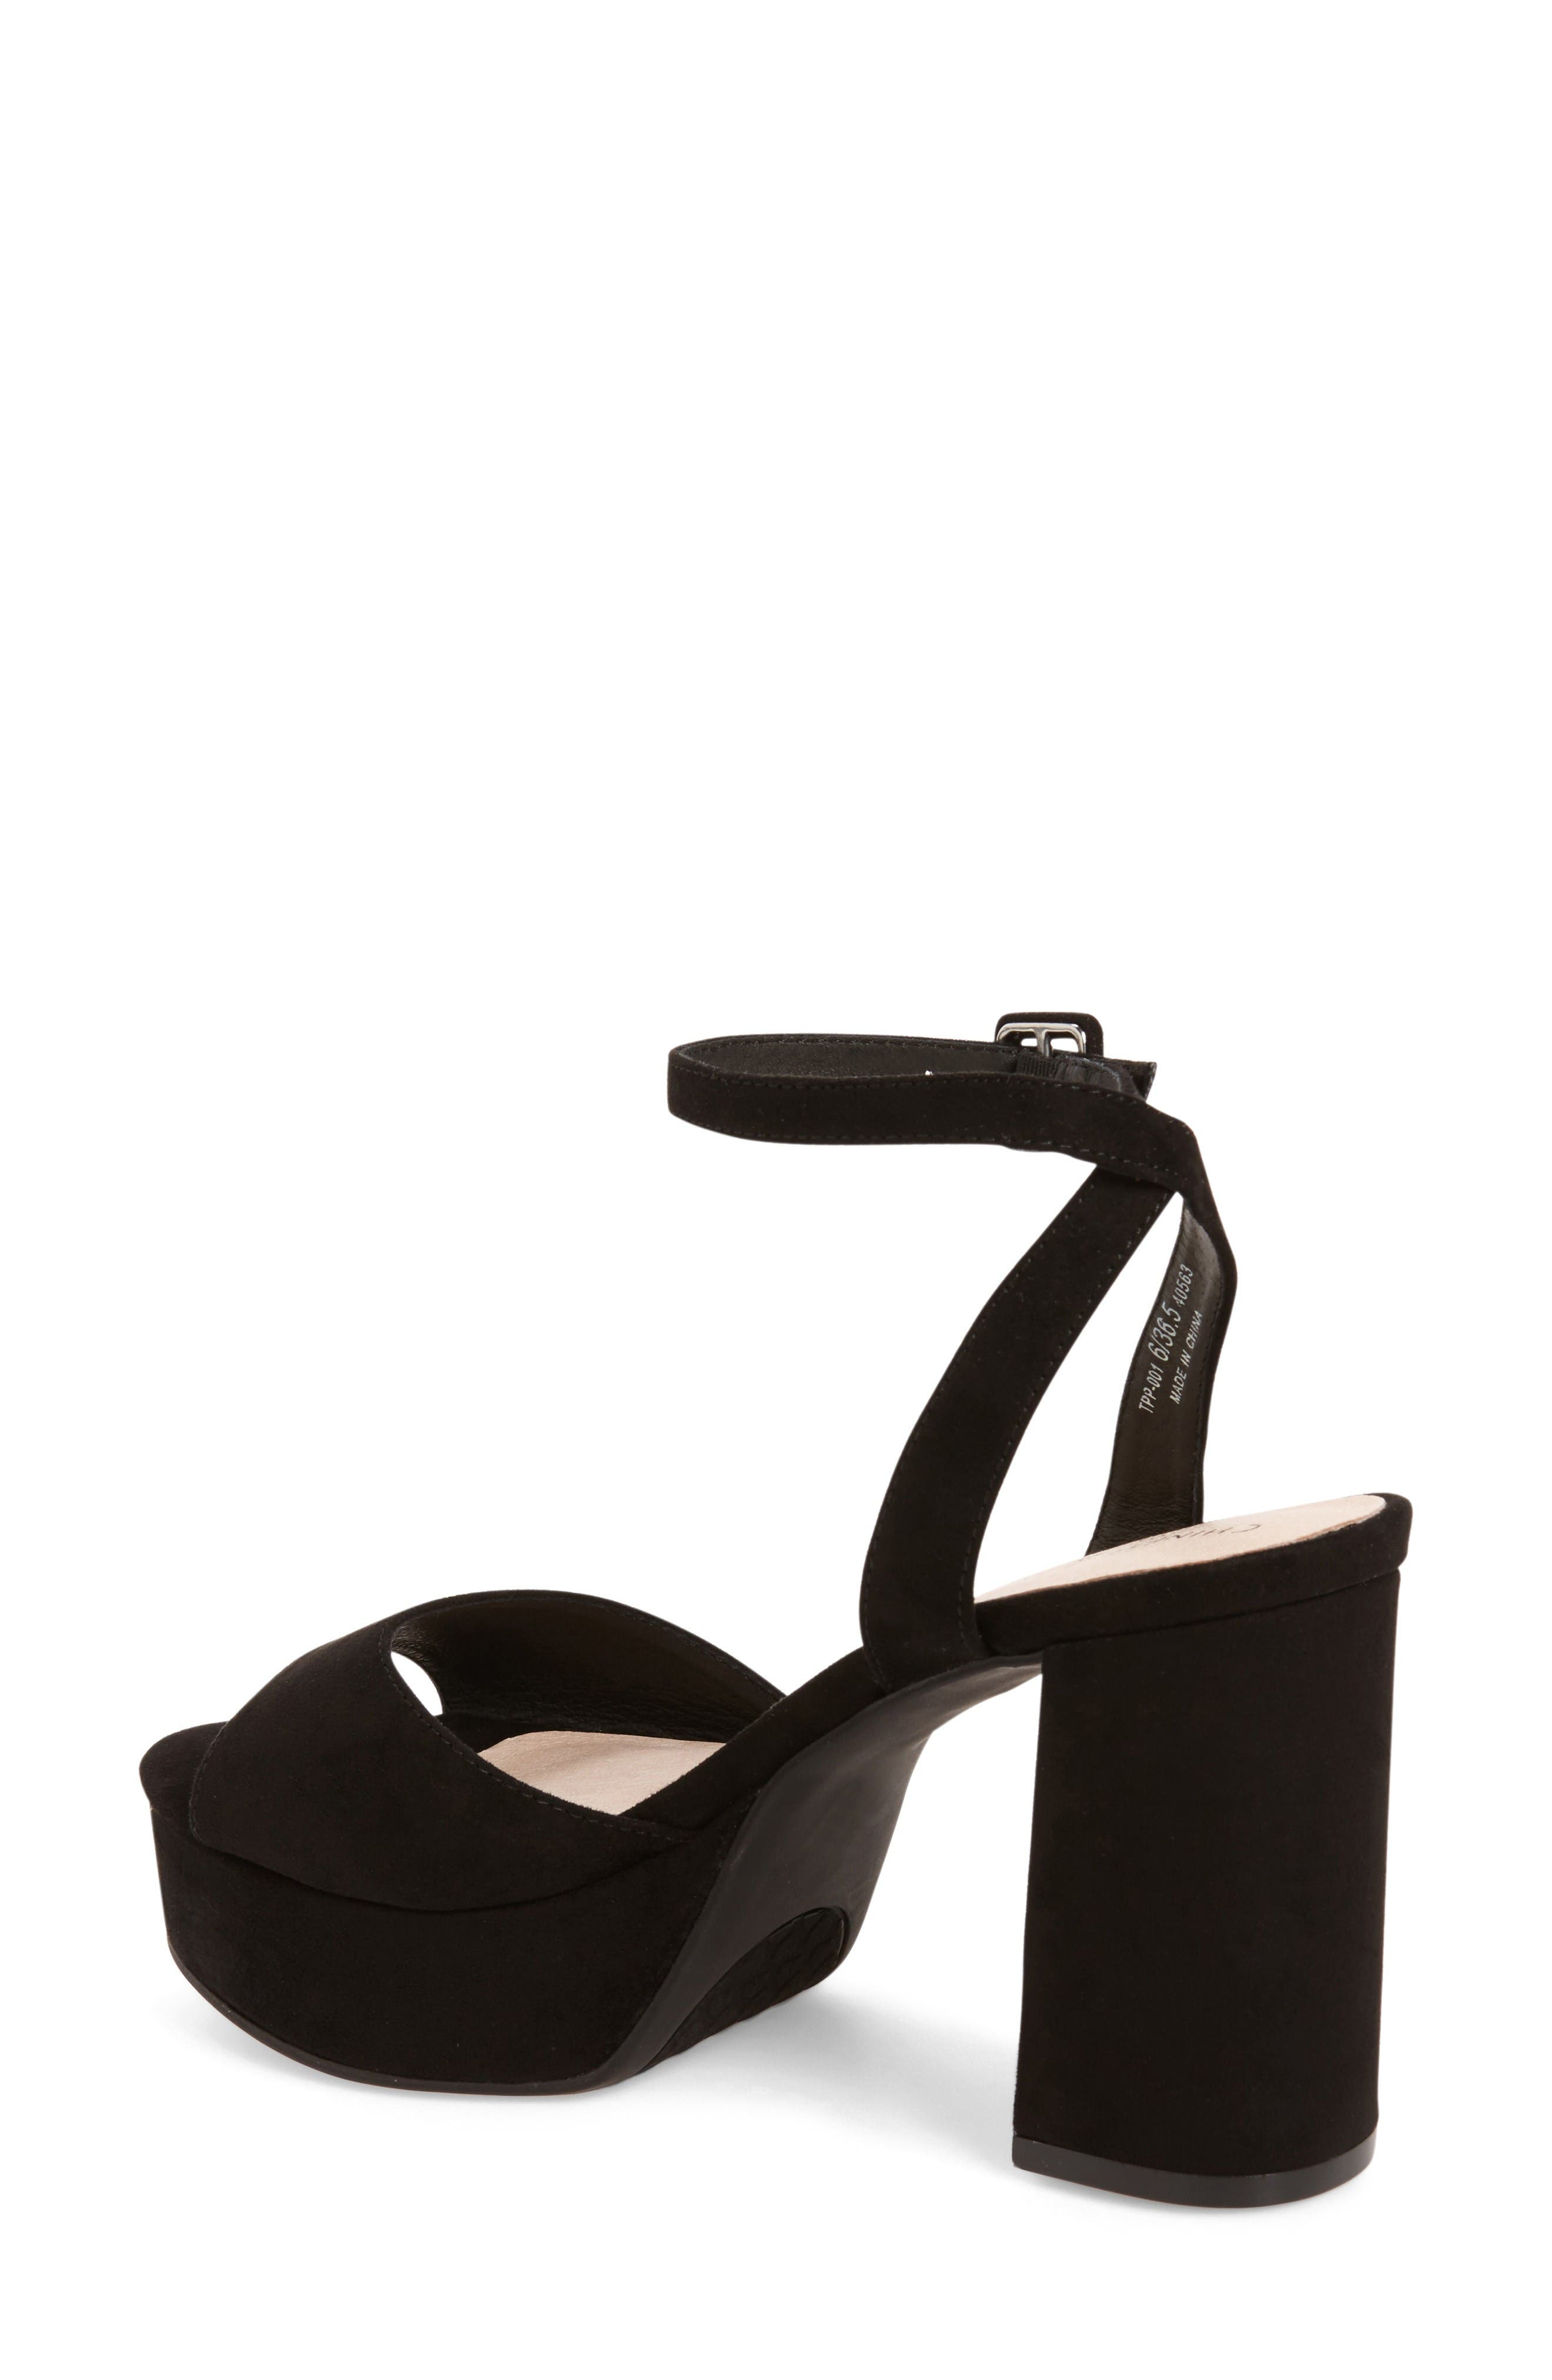 30f3079b735 Women's Chinese Laundry Heels | Nordstrom